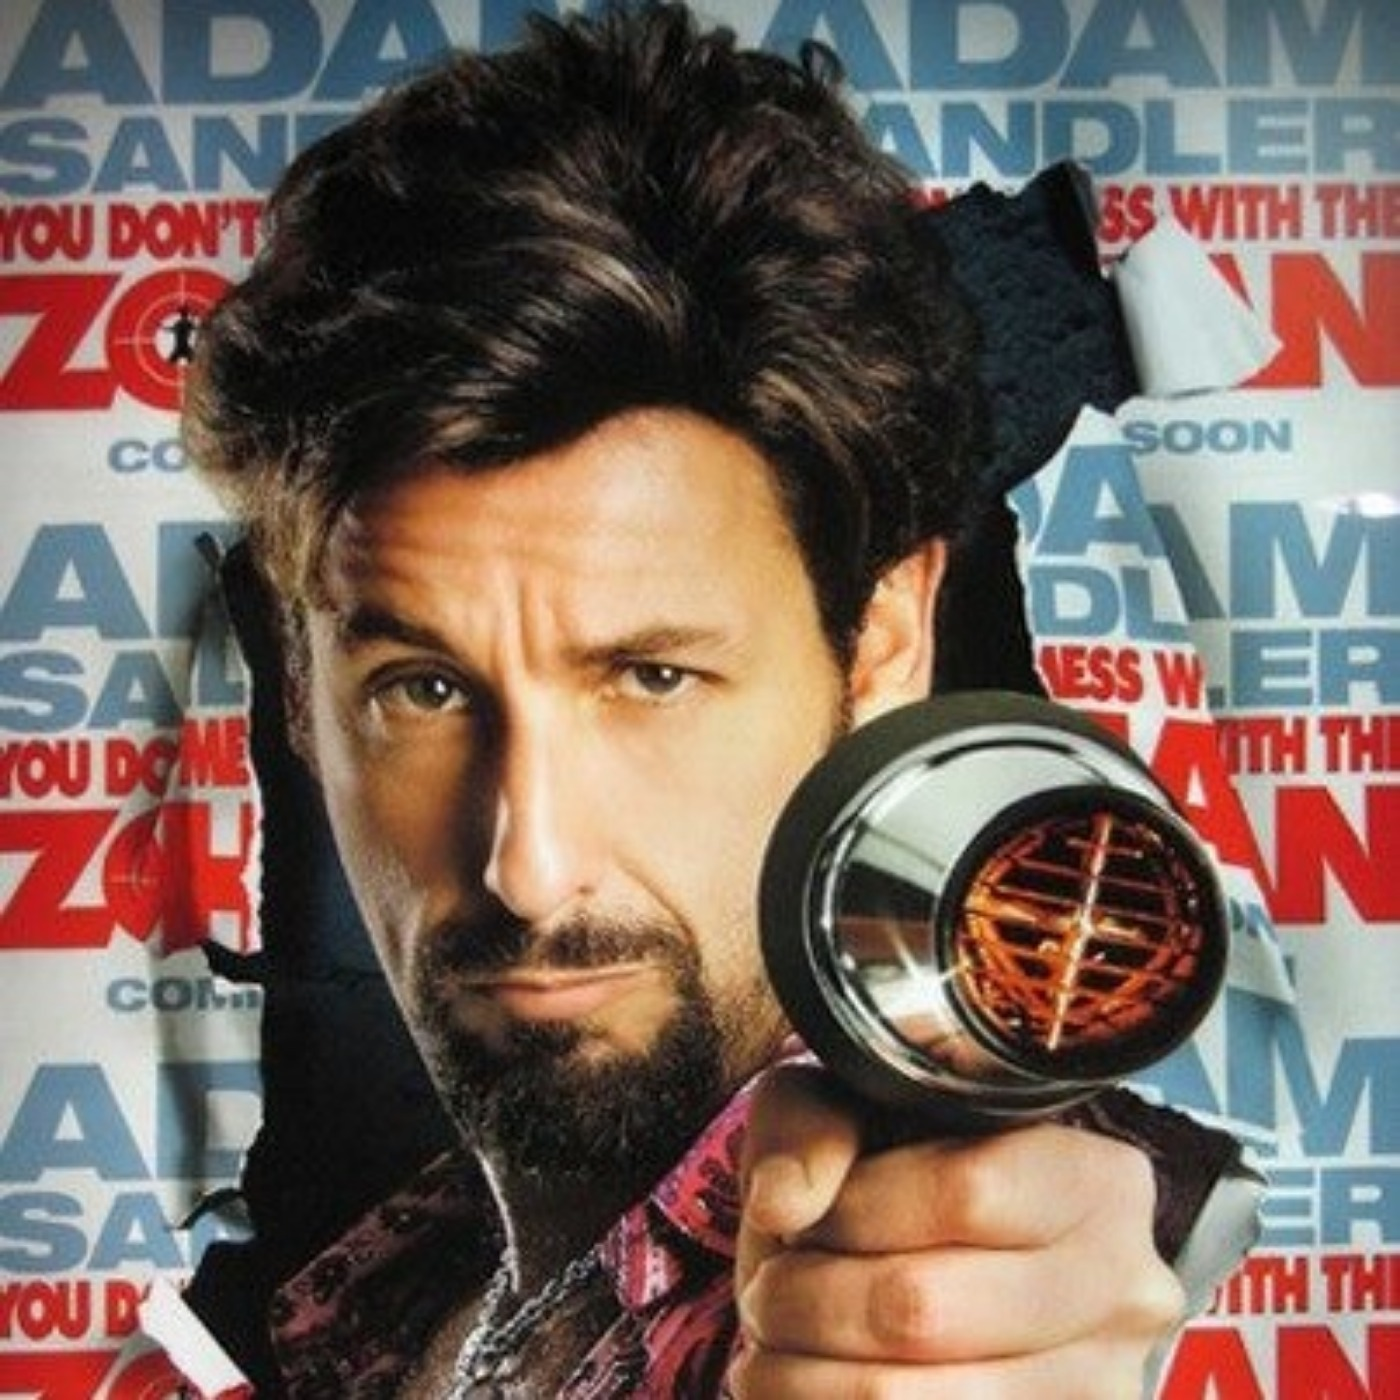 PODCAST CINEMA | critique du film RIEN QUE POUR VOS CHEVEUX / YOU DON'T MESS WITH THE ZOHAN | CinéMaRadio